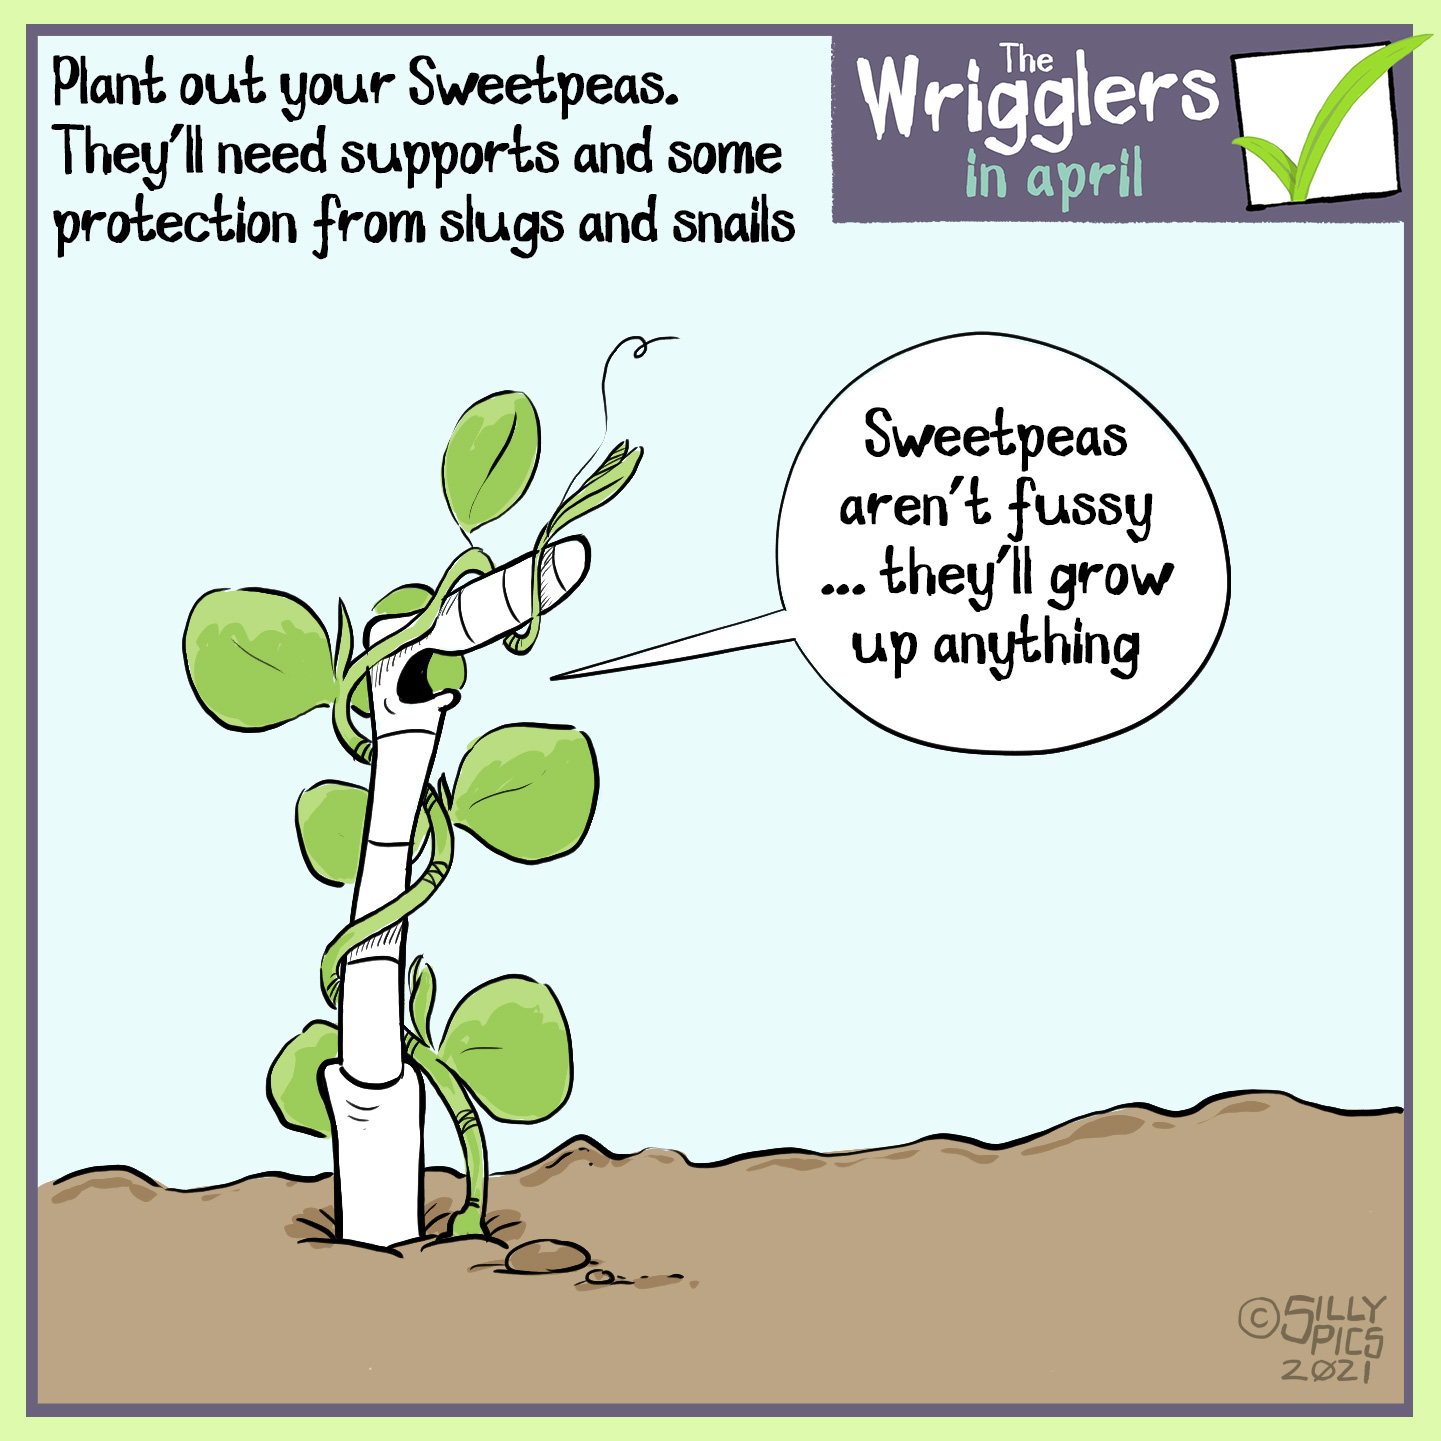 """Plant out your sweet peas, they're hardy enough to withstand a light frost … but will need protection from slugs and snails In this cartoon a worm is upright in the soil with a sweetie twisted around it as if it was a support. The work says: """"sweetpeas aren't fussy, they'll grow up anything"""""""